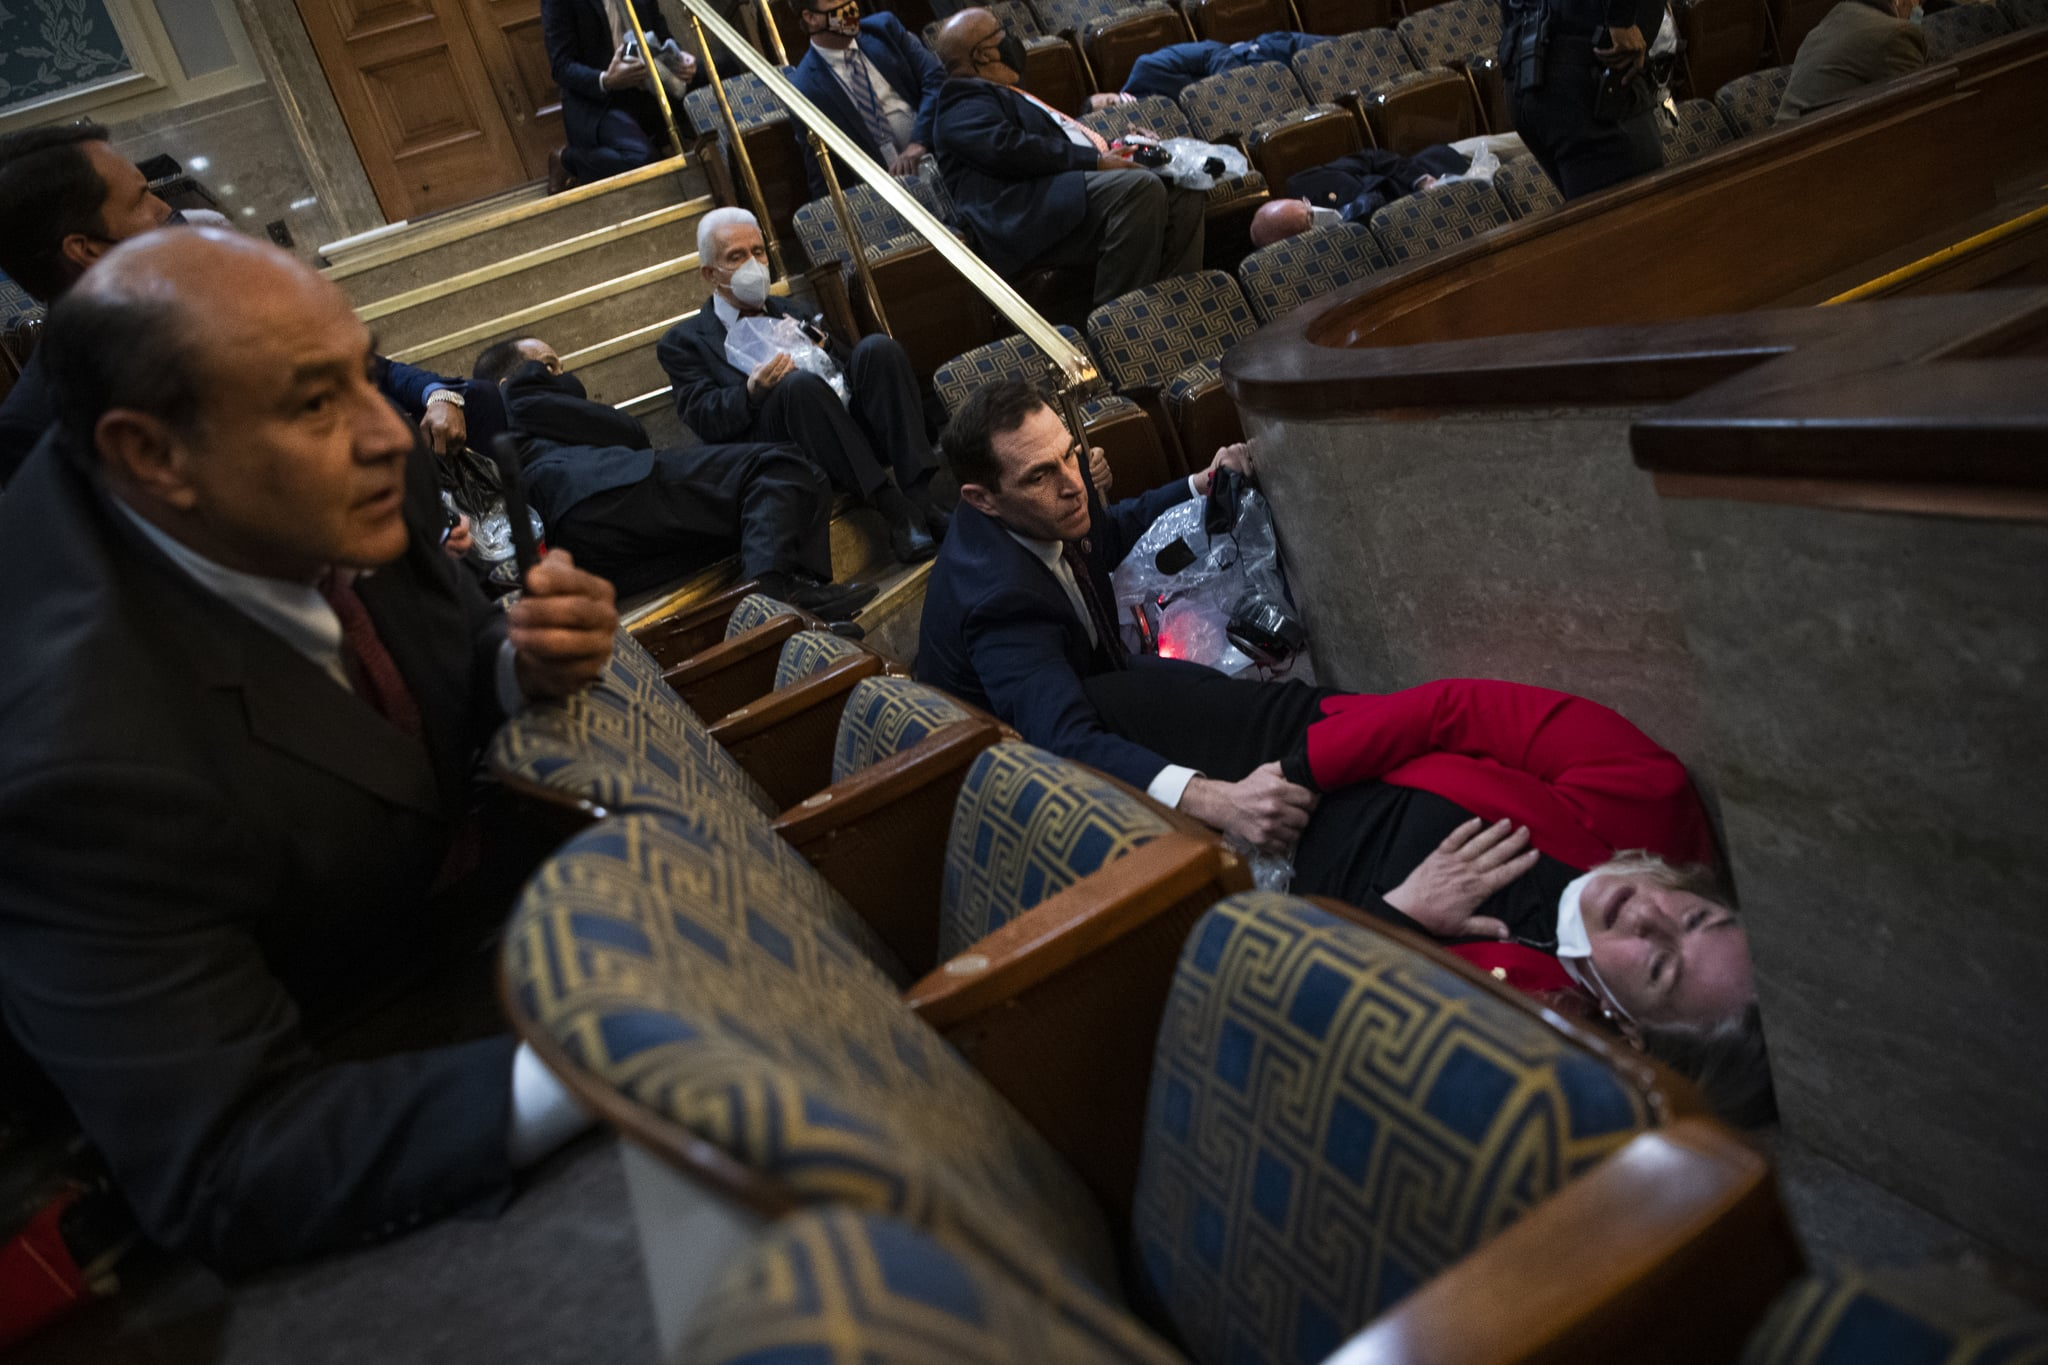 UNITED STATES - JANUARY 6: Rep. Jason Crow, D-Colo.,  comforts Rep. Susan Wild, D-Pa., while taking cover as protesters disrupt the joint session of Congress to certify the Electoral College vote on Wednesday, January 6, 2021. (Photo By Tom Williams/CQ-Roll Call, Inc via Getty Images)